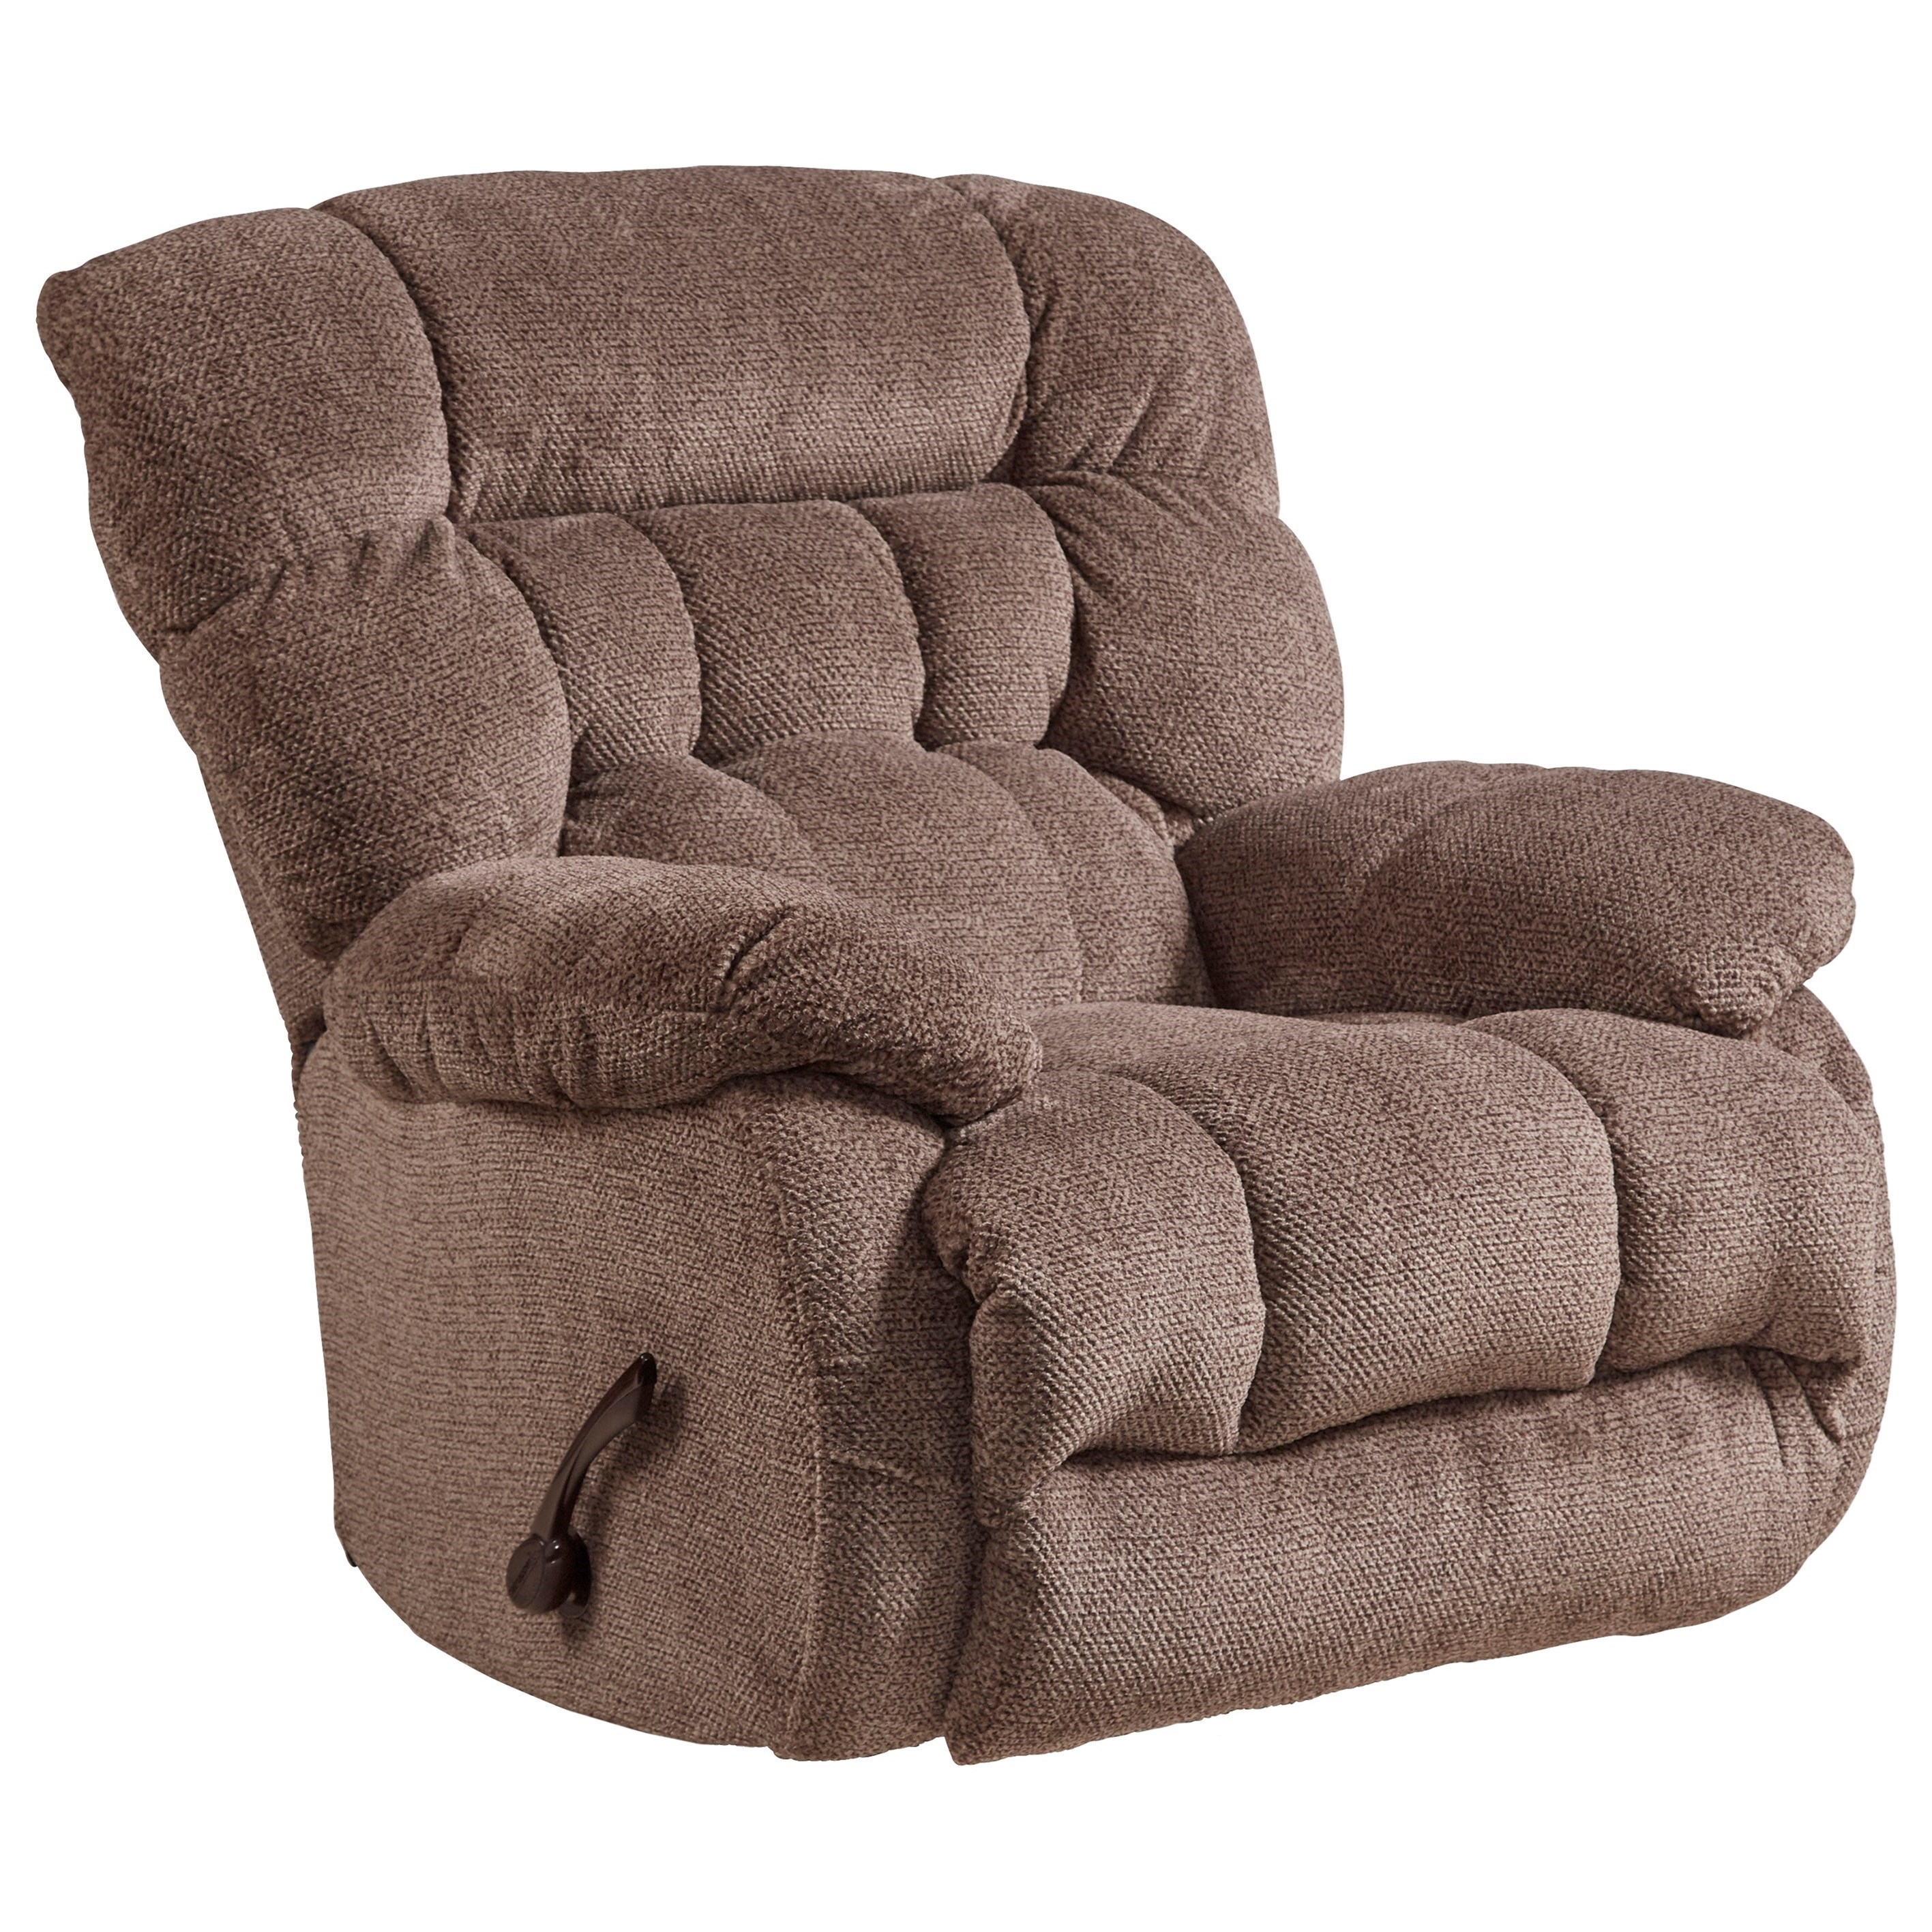 Casual Swivel Glider Recliner with Pillow Arms